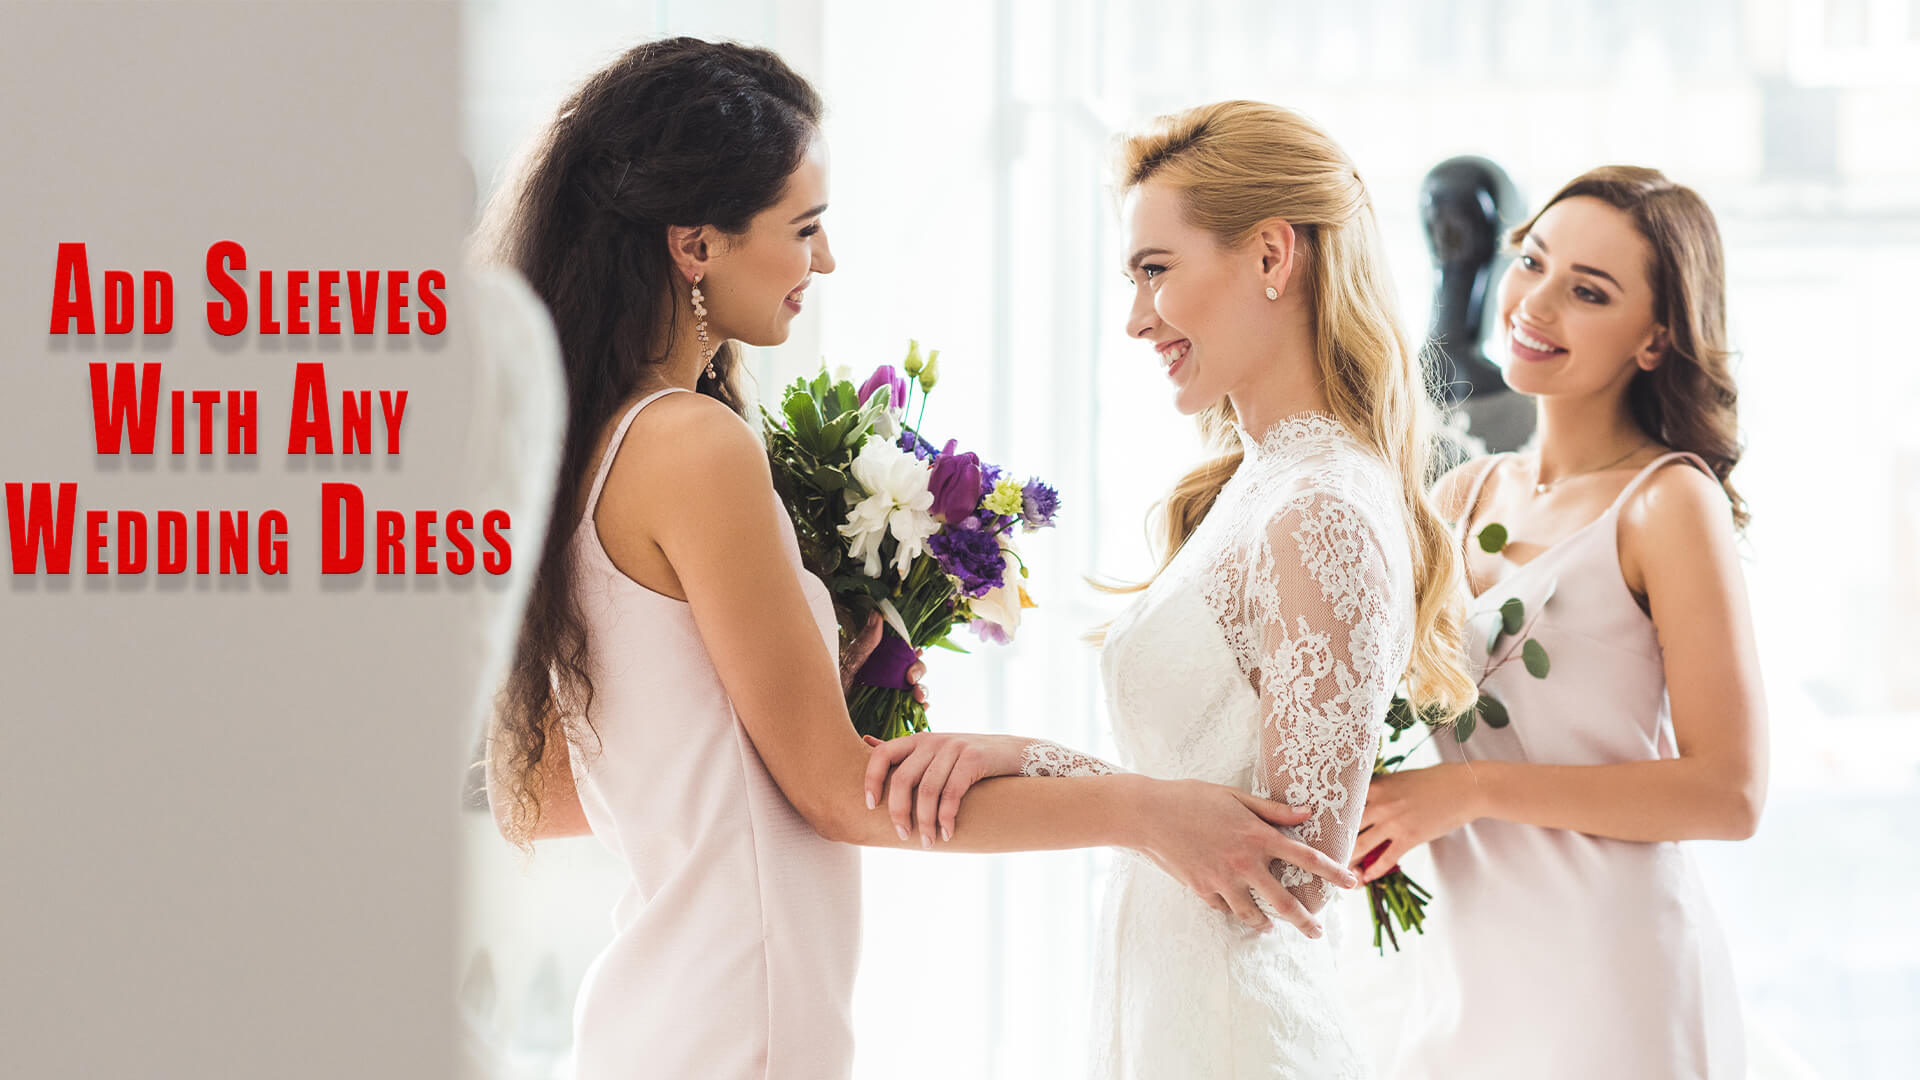 Add Sleeves with Any Wedding Dress